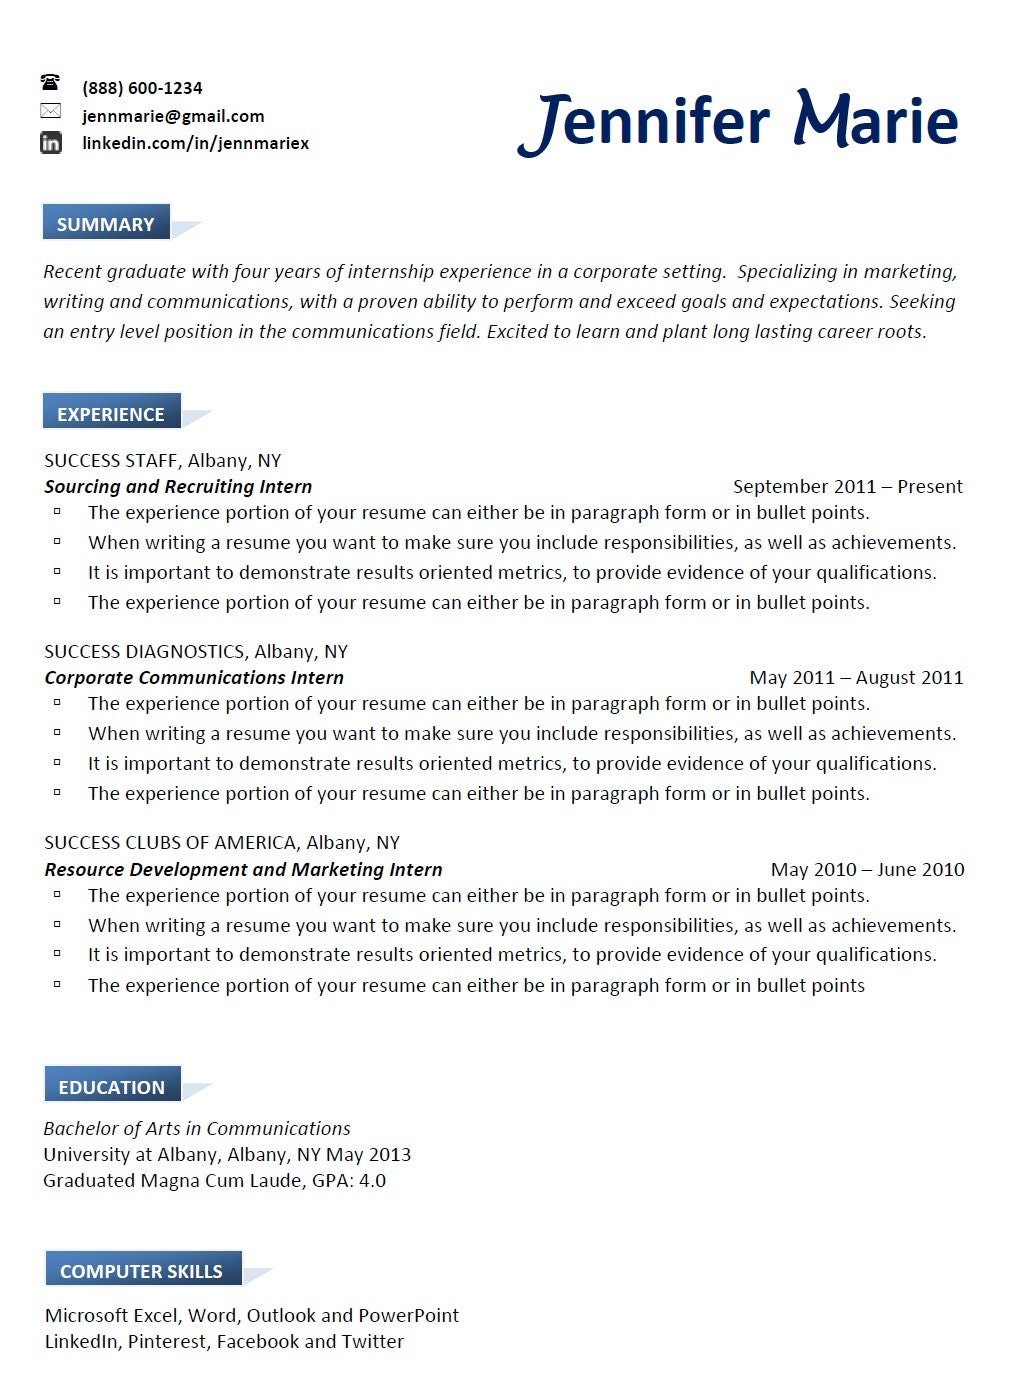 professional resume writing resume help search